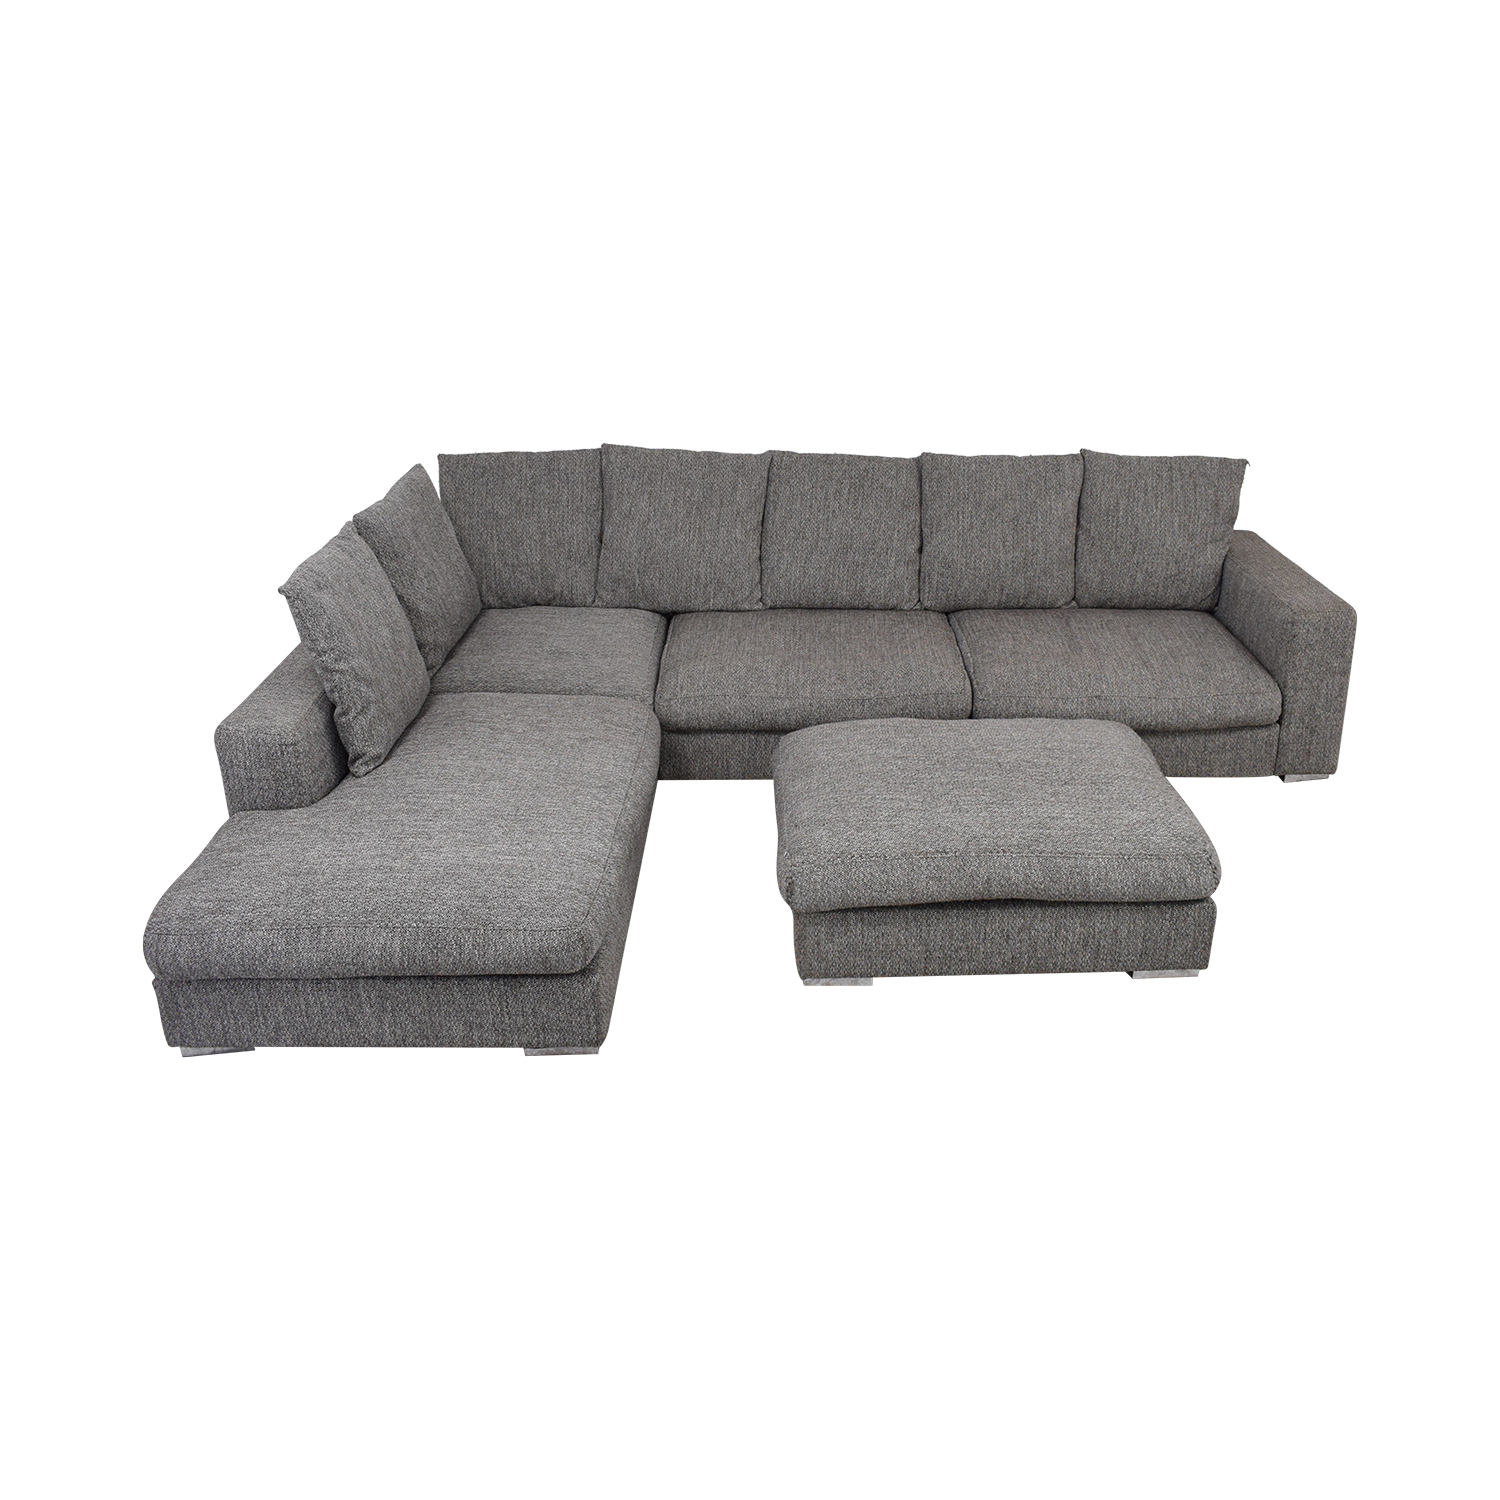 BoConcept L-Shaped Modular Sofa with Ottoman / Sofas